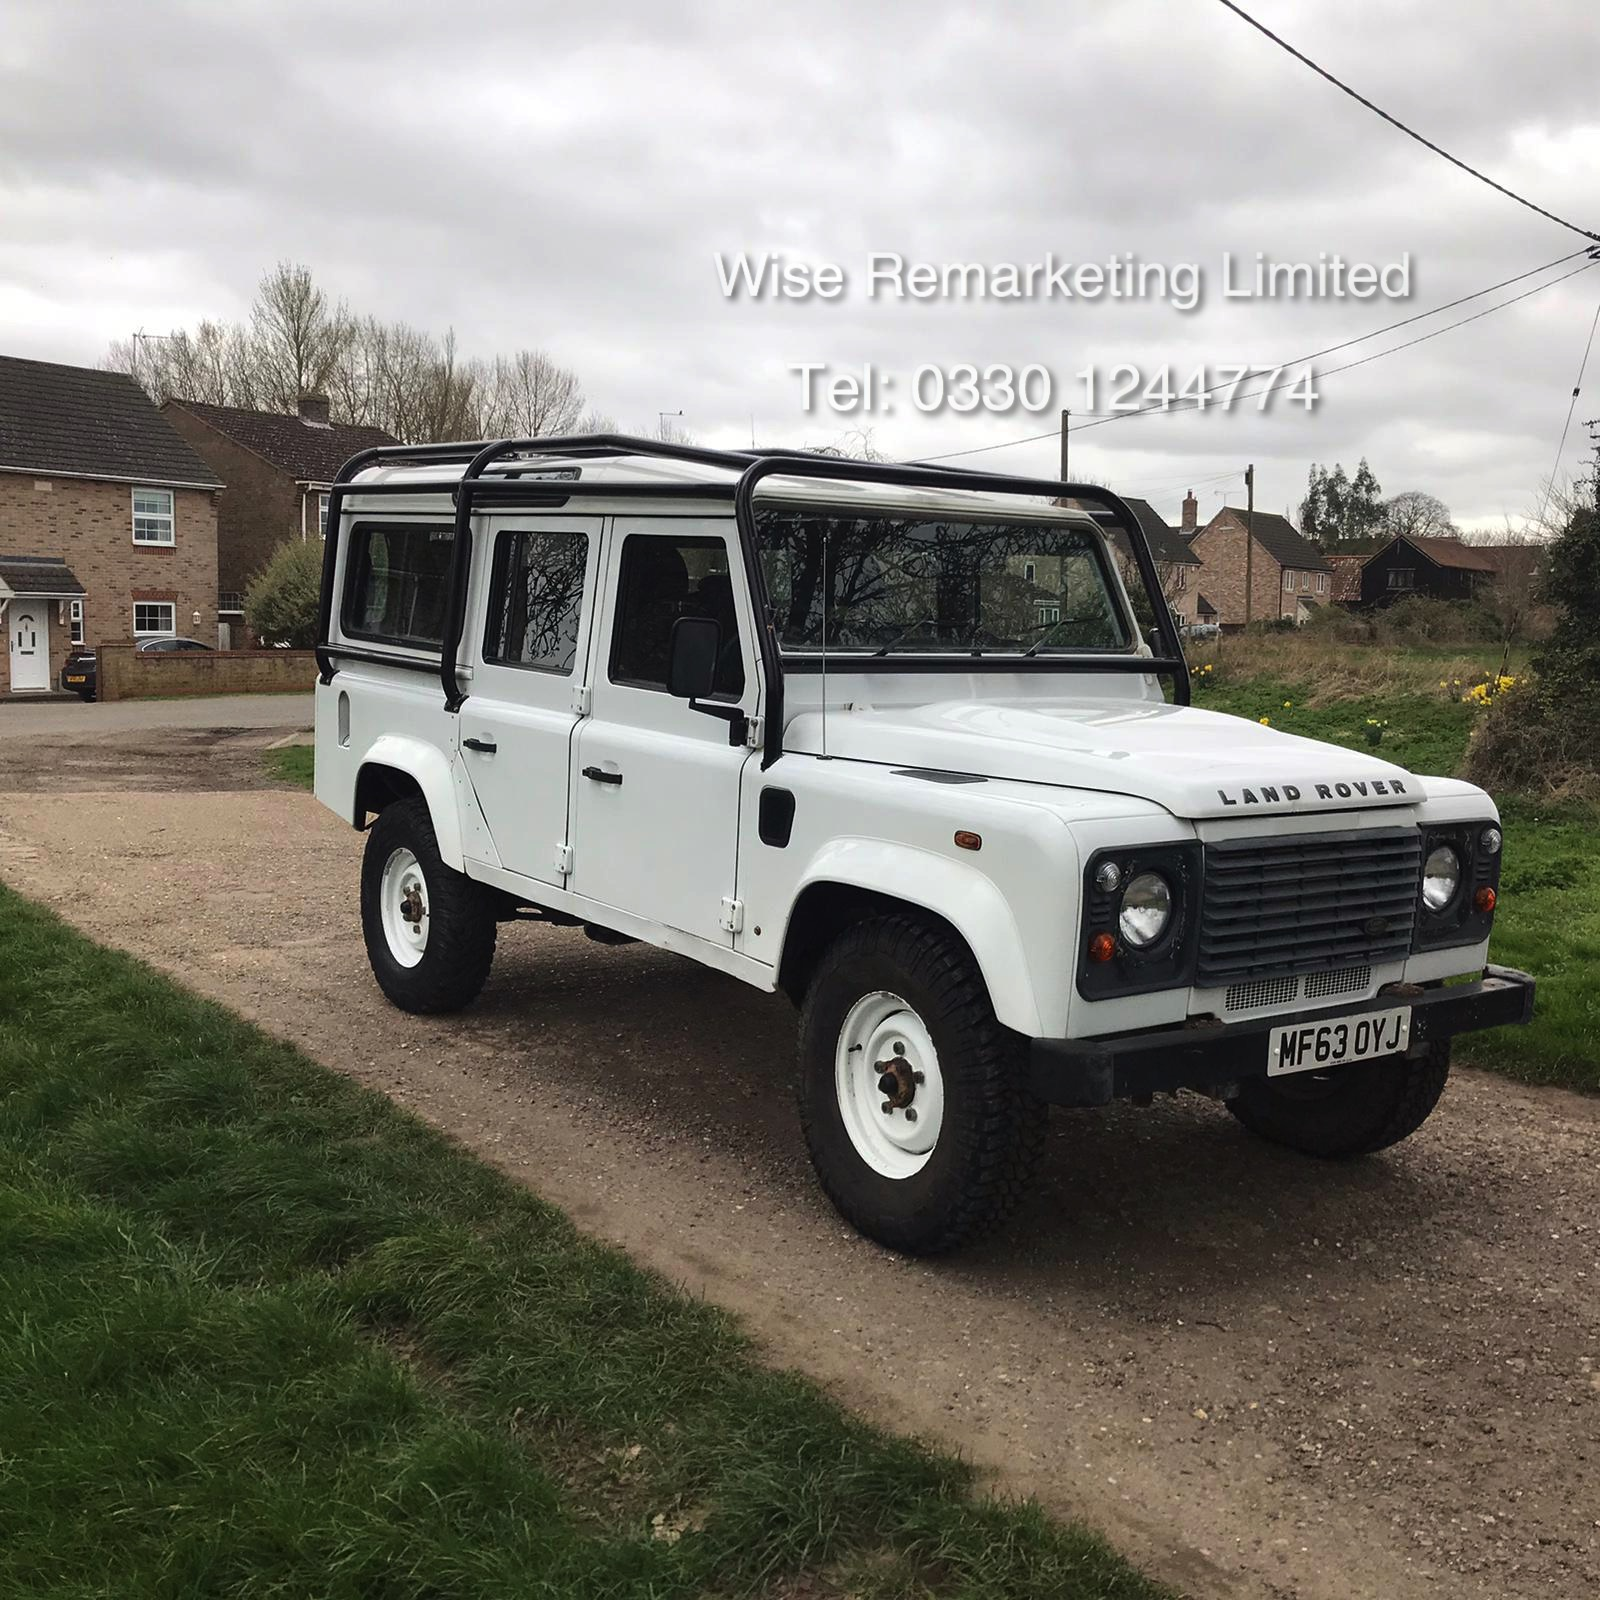 Land Rover Defender 110 2.2 TD County Station Wagon - 2014 Model - 1 Owner From New - ONLY 19K Miles